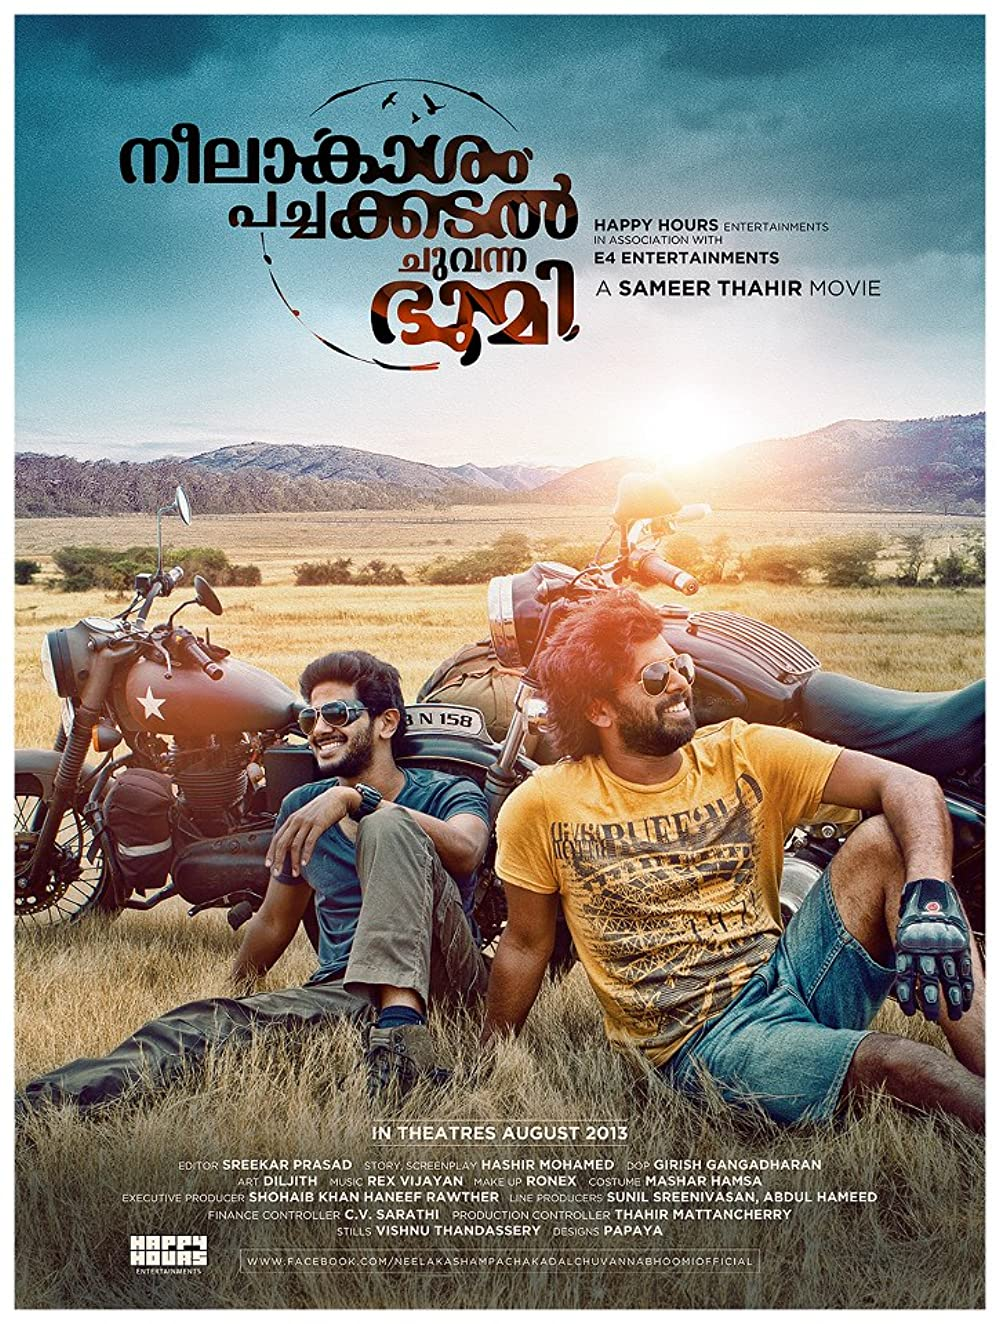 Neelakasham Pachakadal Chuvanna Bhoomi 2021 Hindi Dubbed 1080p HDRip ESubs 2.8GB x264 AAC